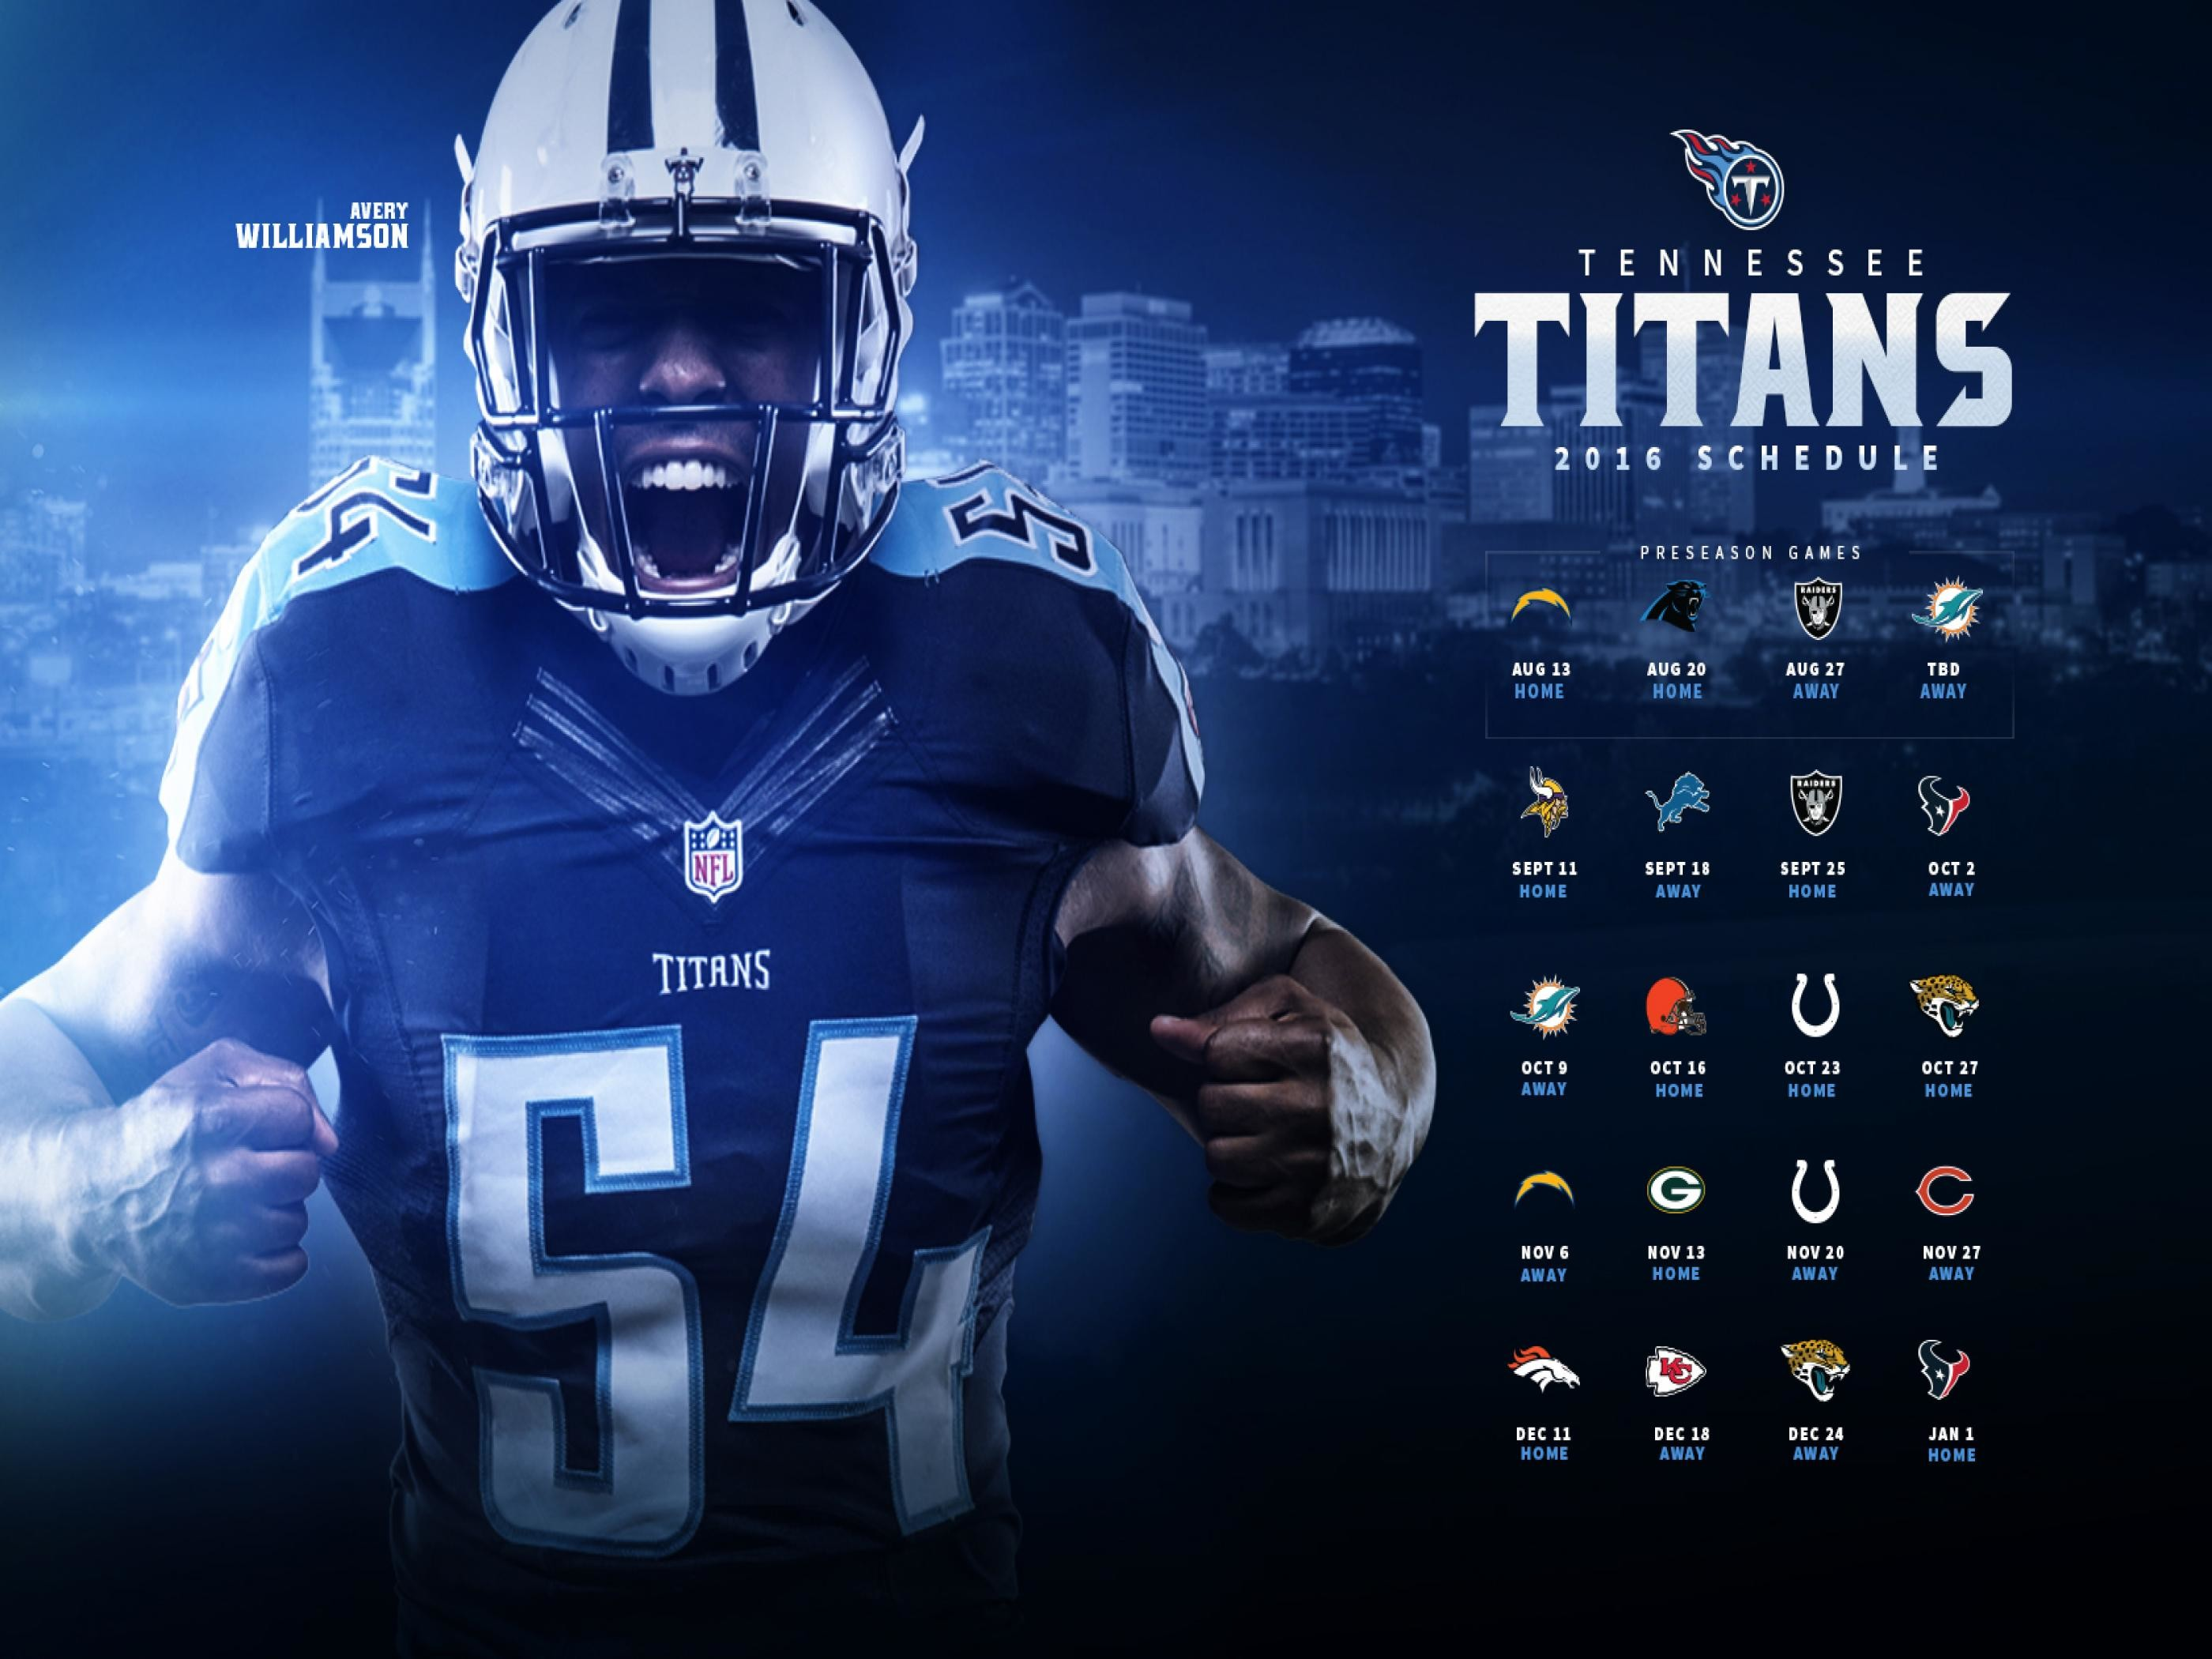 Res: 2800x2100, Tennessee Titans Wallpapers Download #YN57ZW2